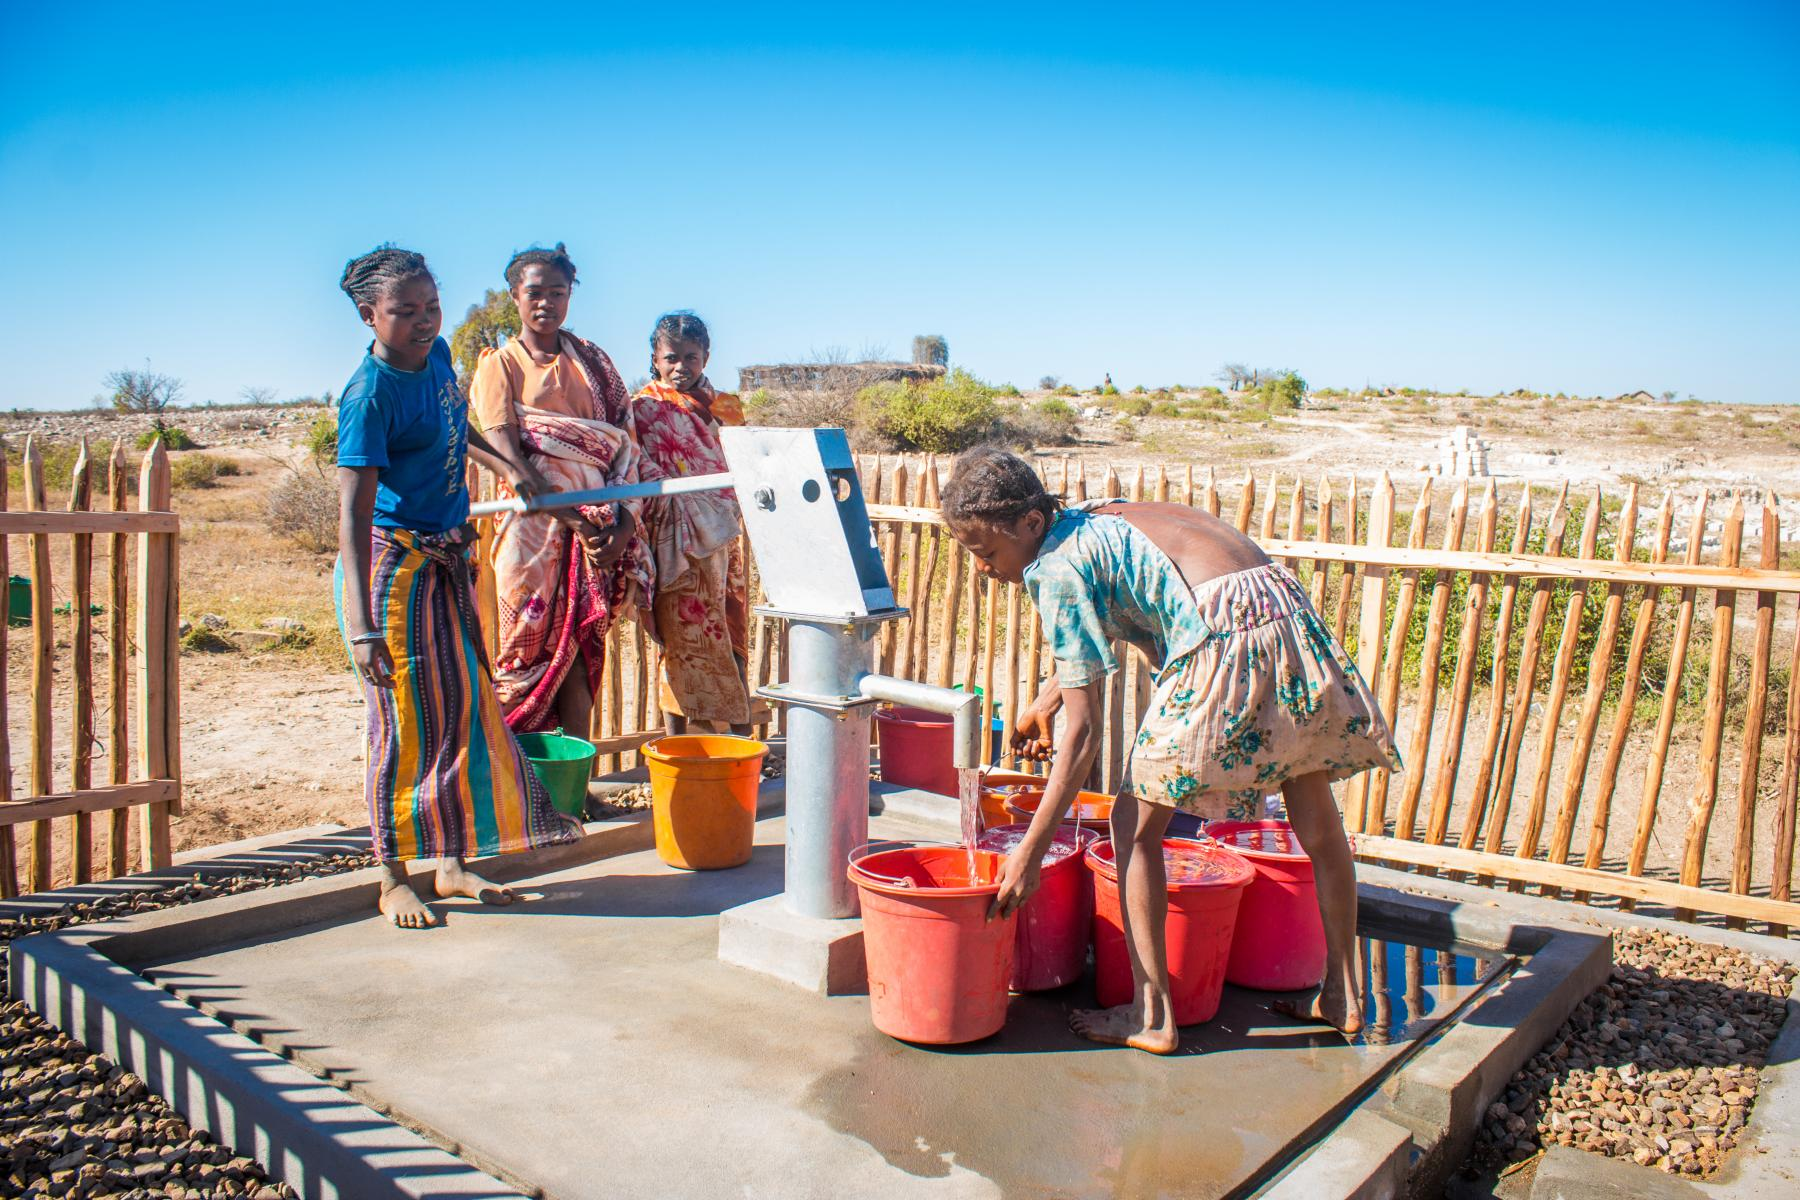 A group of women uses a water point located in an arid area.